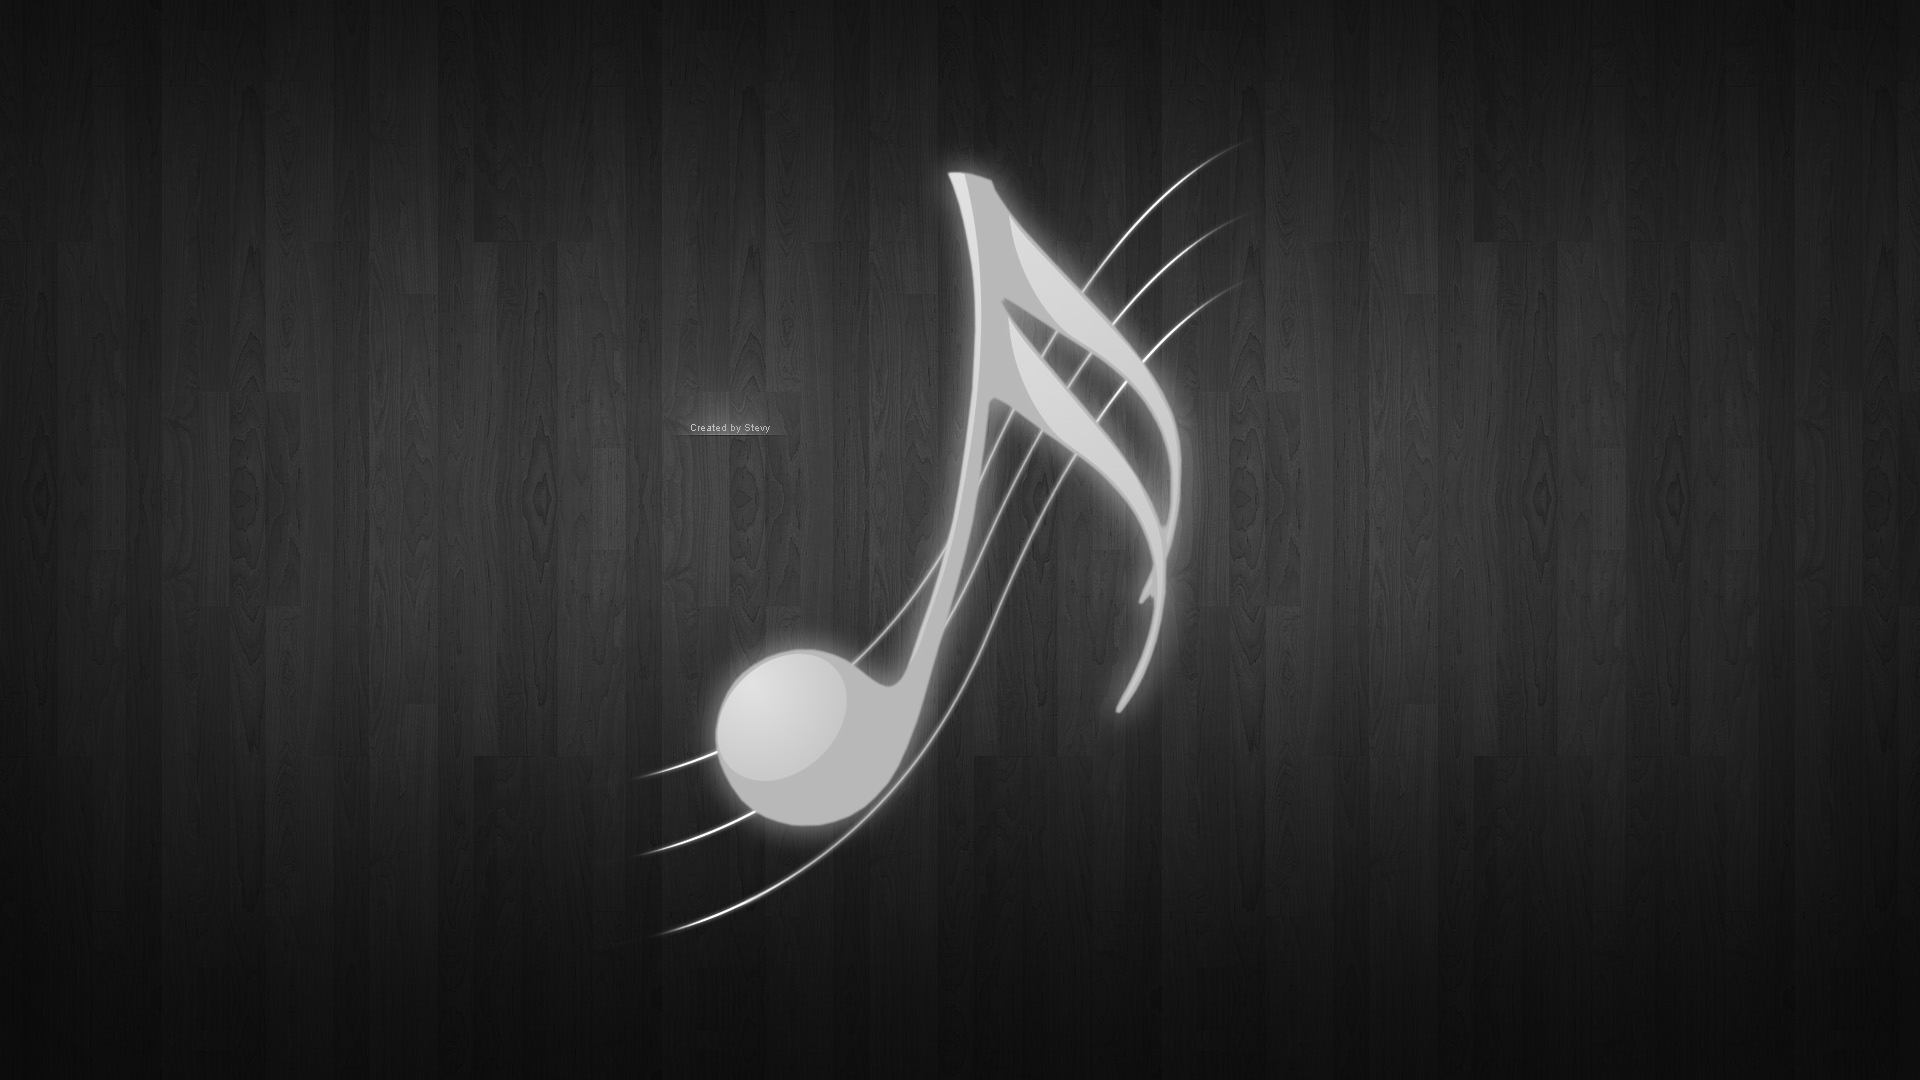 Black wallpaper clipart free download Black Wallpaper White Notes Music Images HD Free #28838949 Wallpaper ... free download